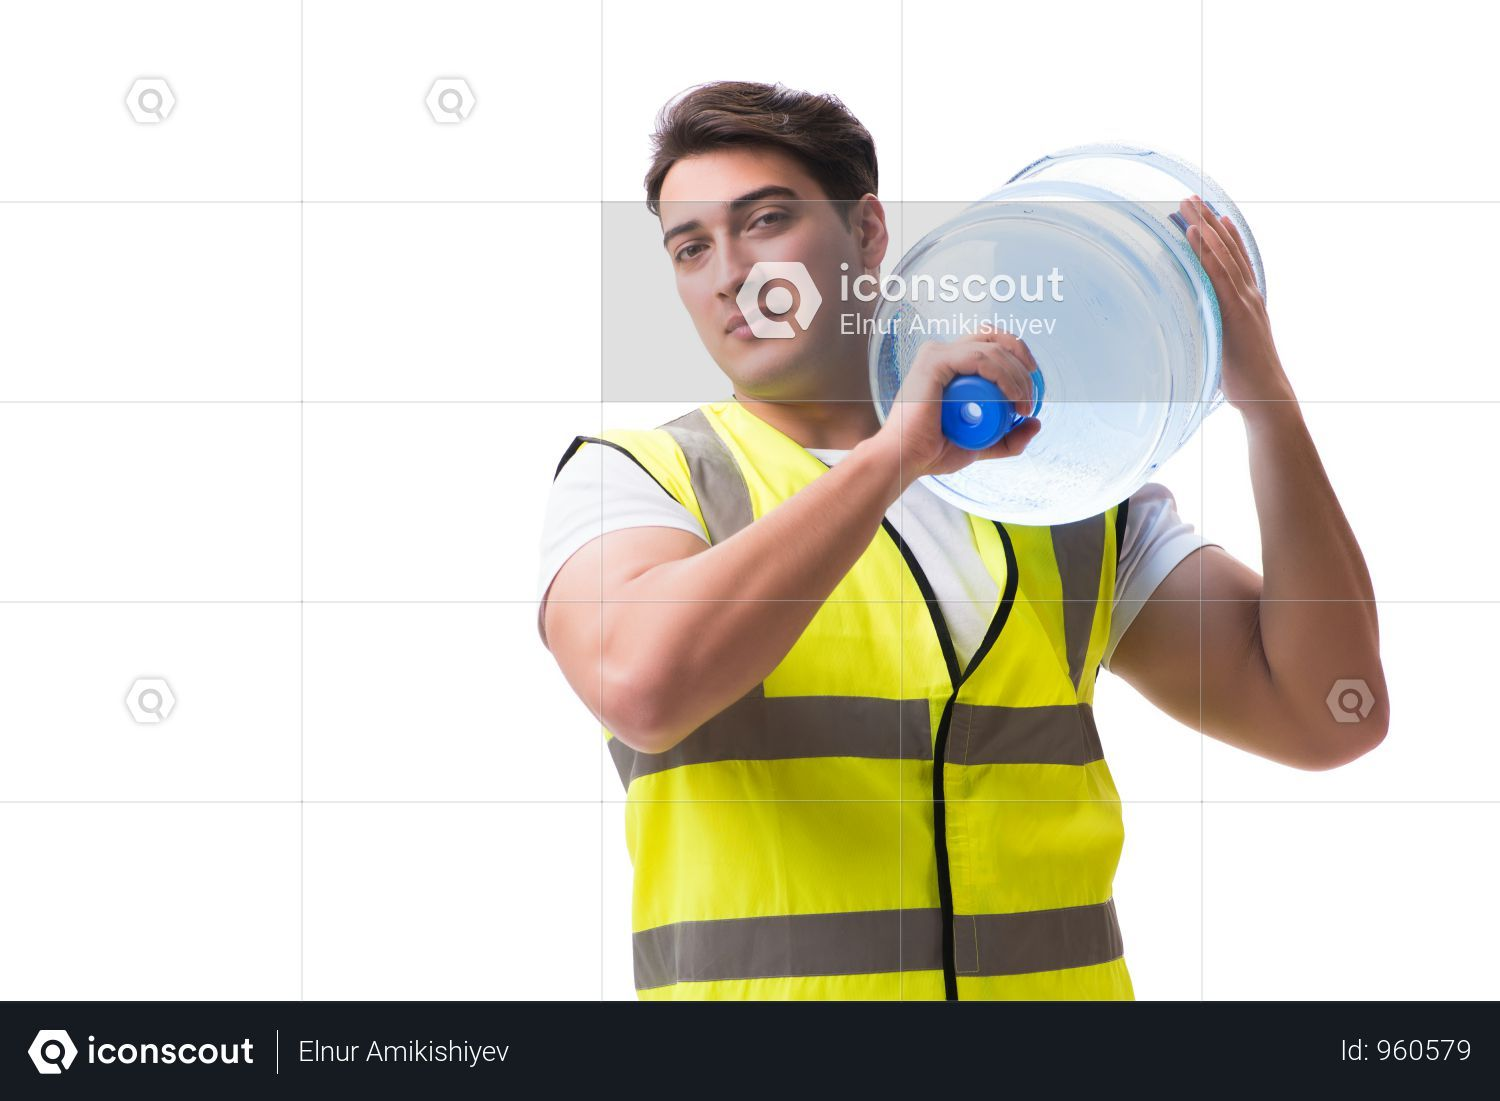 Premium Man Delivering Water Bottle Isolated On White Photo Download In Png Jpg Format Water Bottle Delivery Photos Bottle